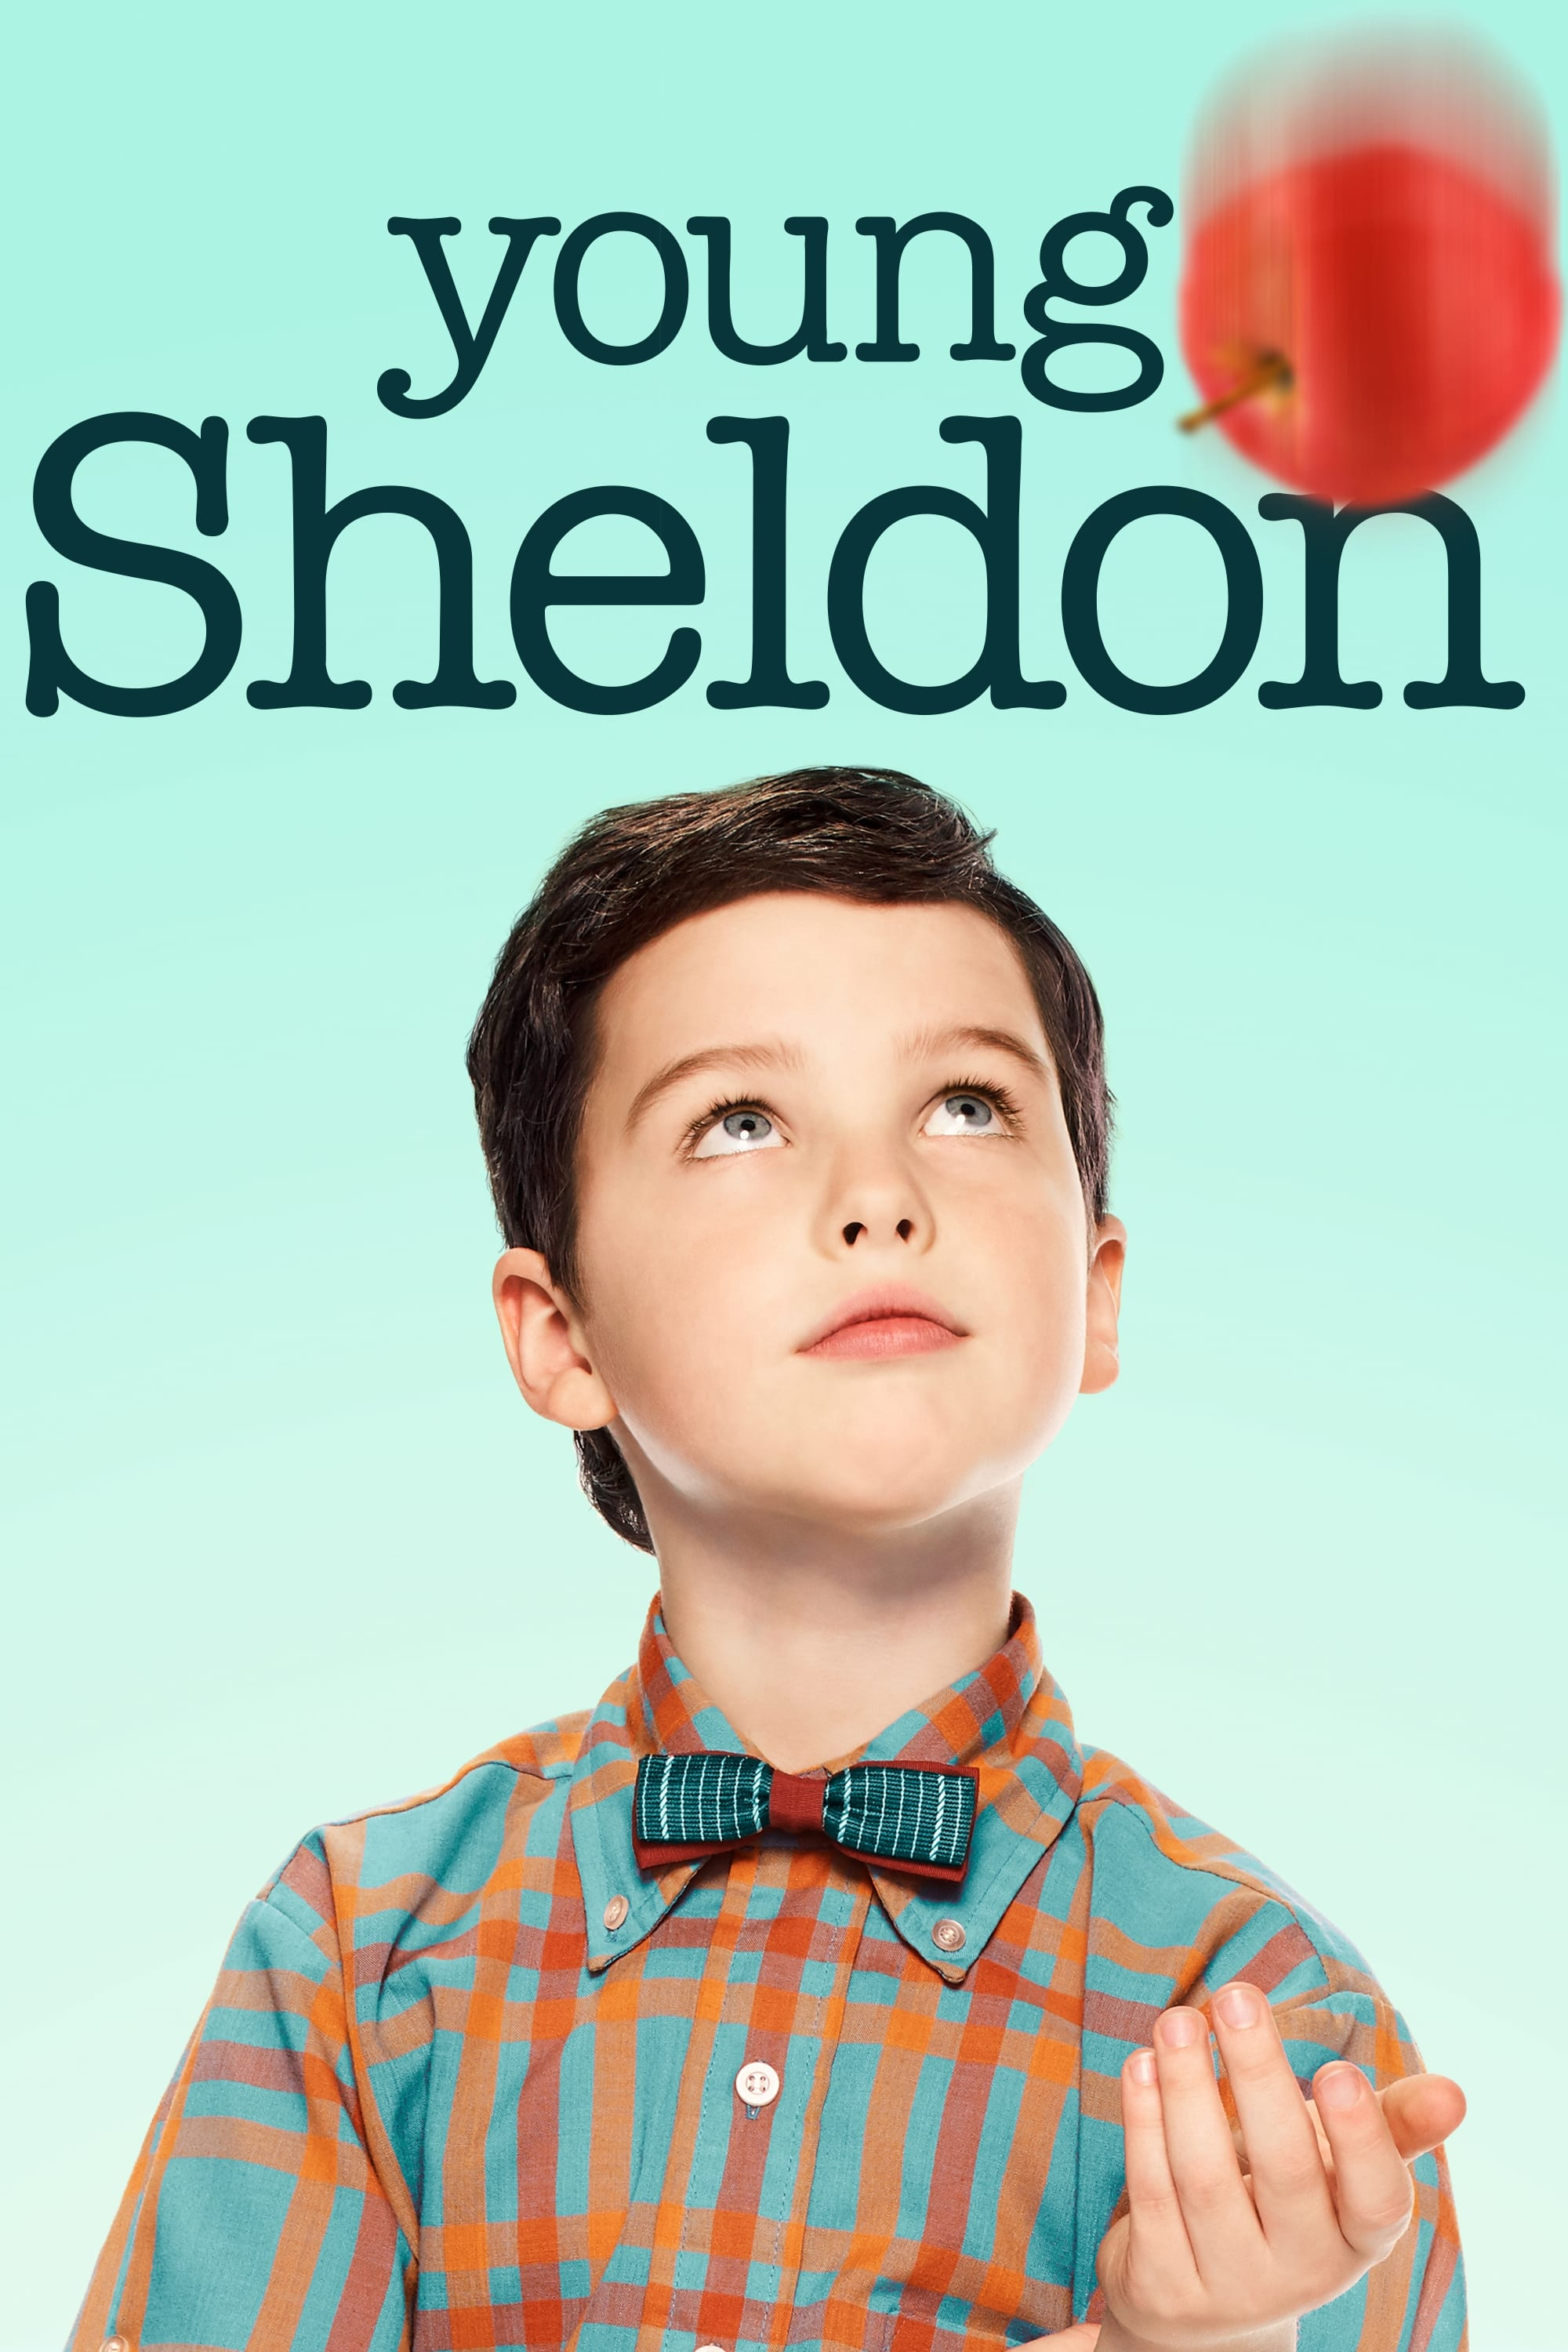 Young Sheldon 2ª Temporada (2018) Torrent - WEB-DL 720p e 1080p Dublado / Dual Áudio e Legendado Download